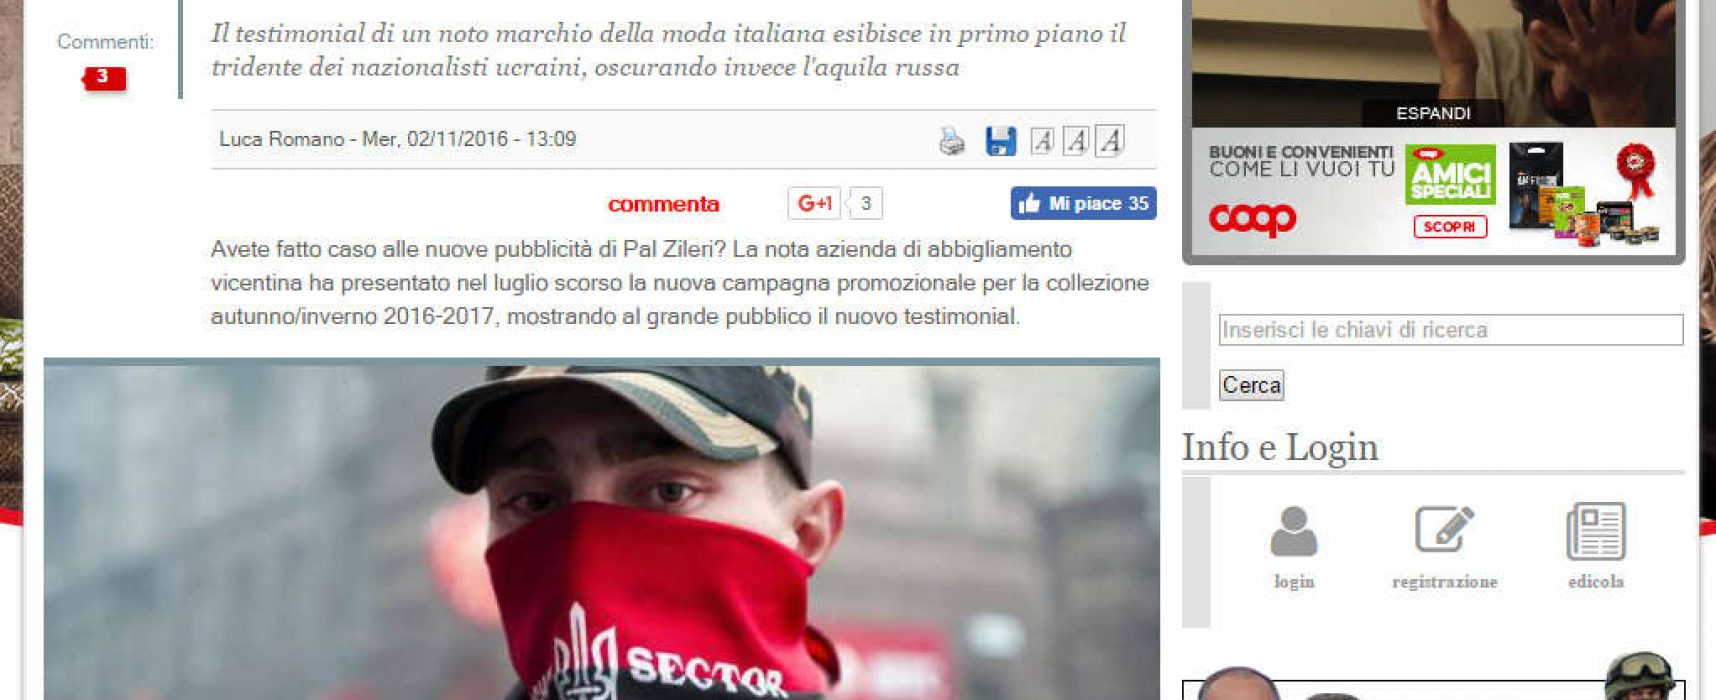 Fake: Italian Il Giornale Claims Ukrainian Dancer is a Nazi